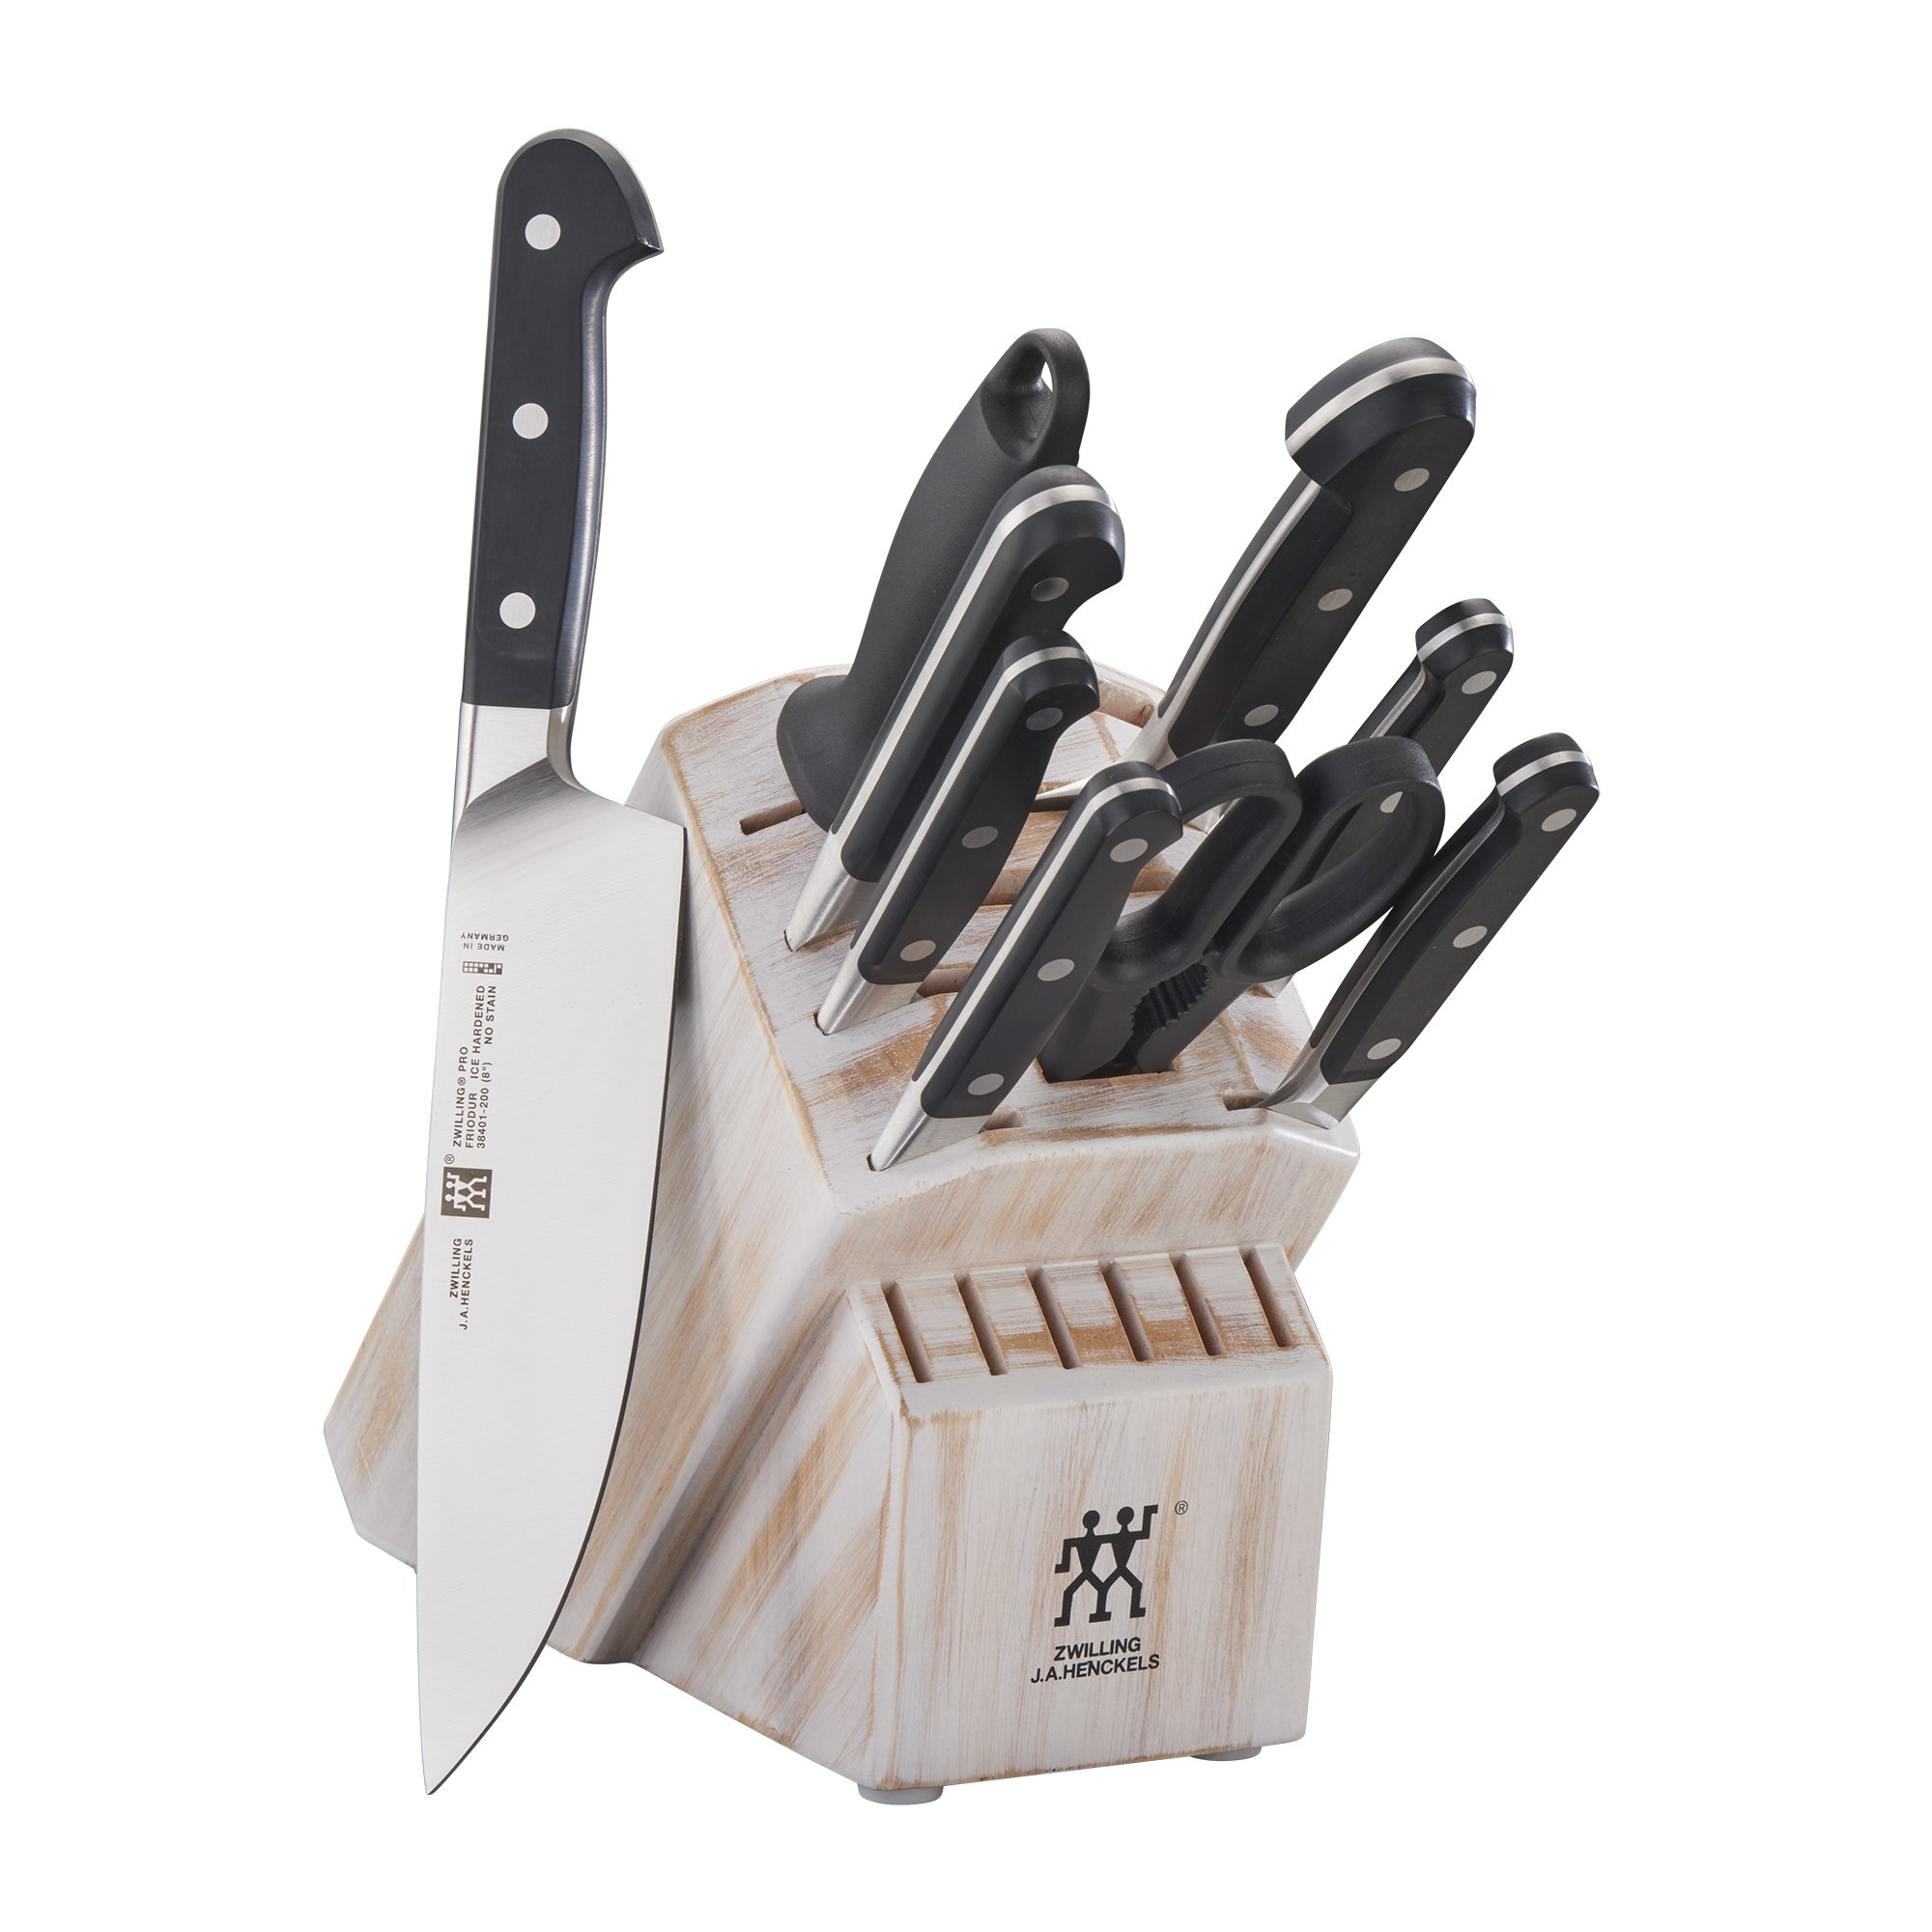 ZWILLING Pro 10-pc Knife Block Set - Rustic White by ZWILLING J.A. Henckels (Image #1)